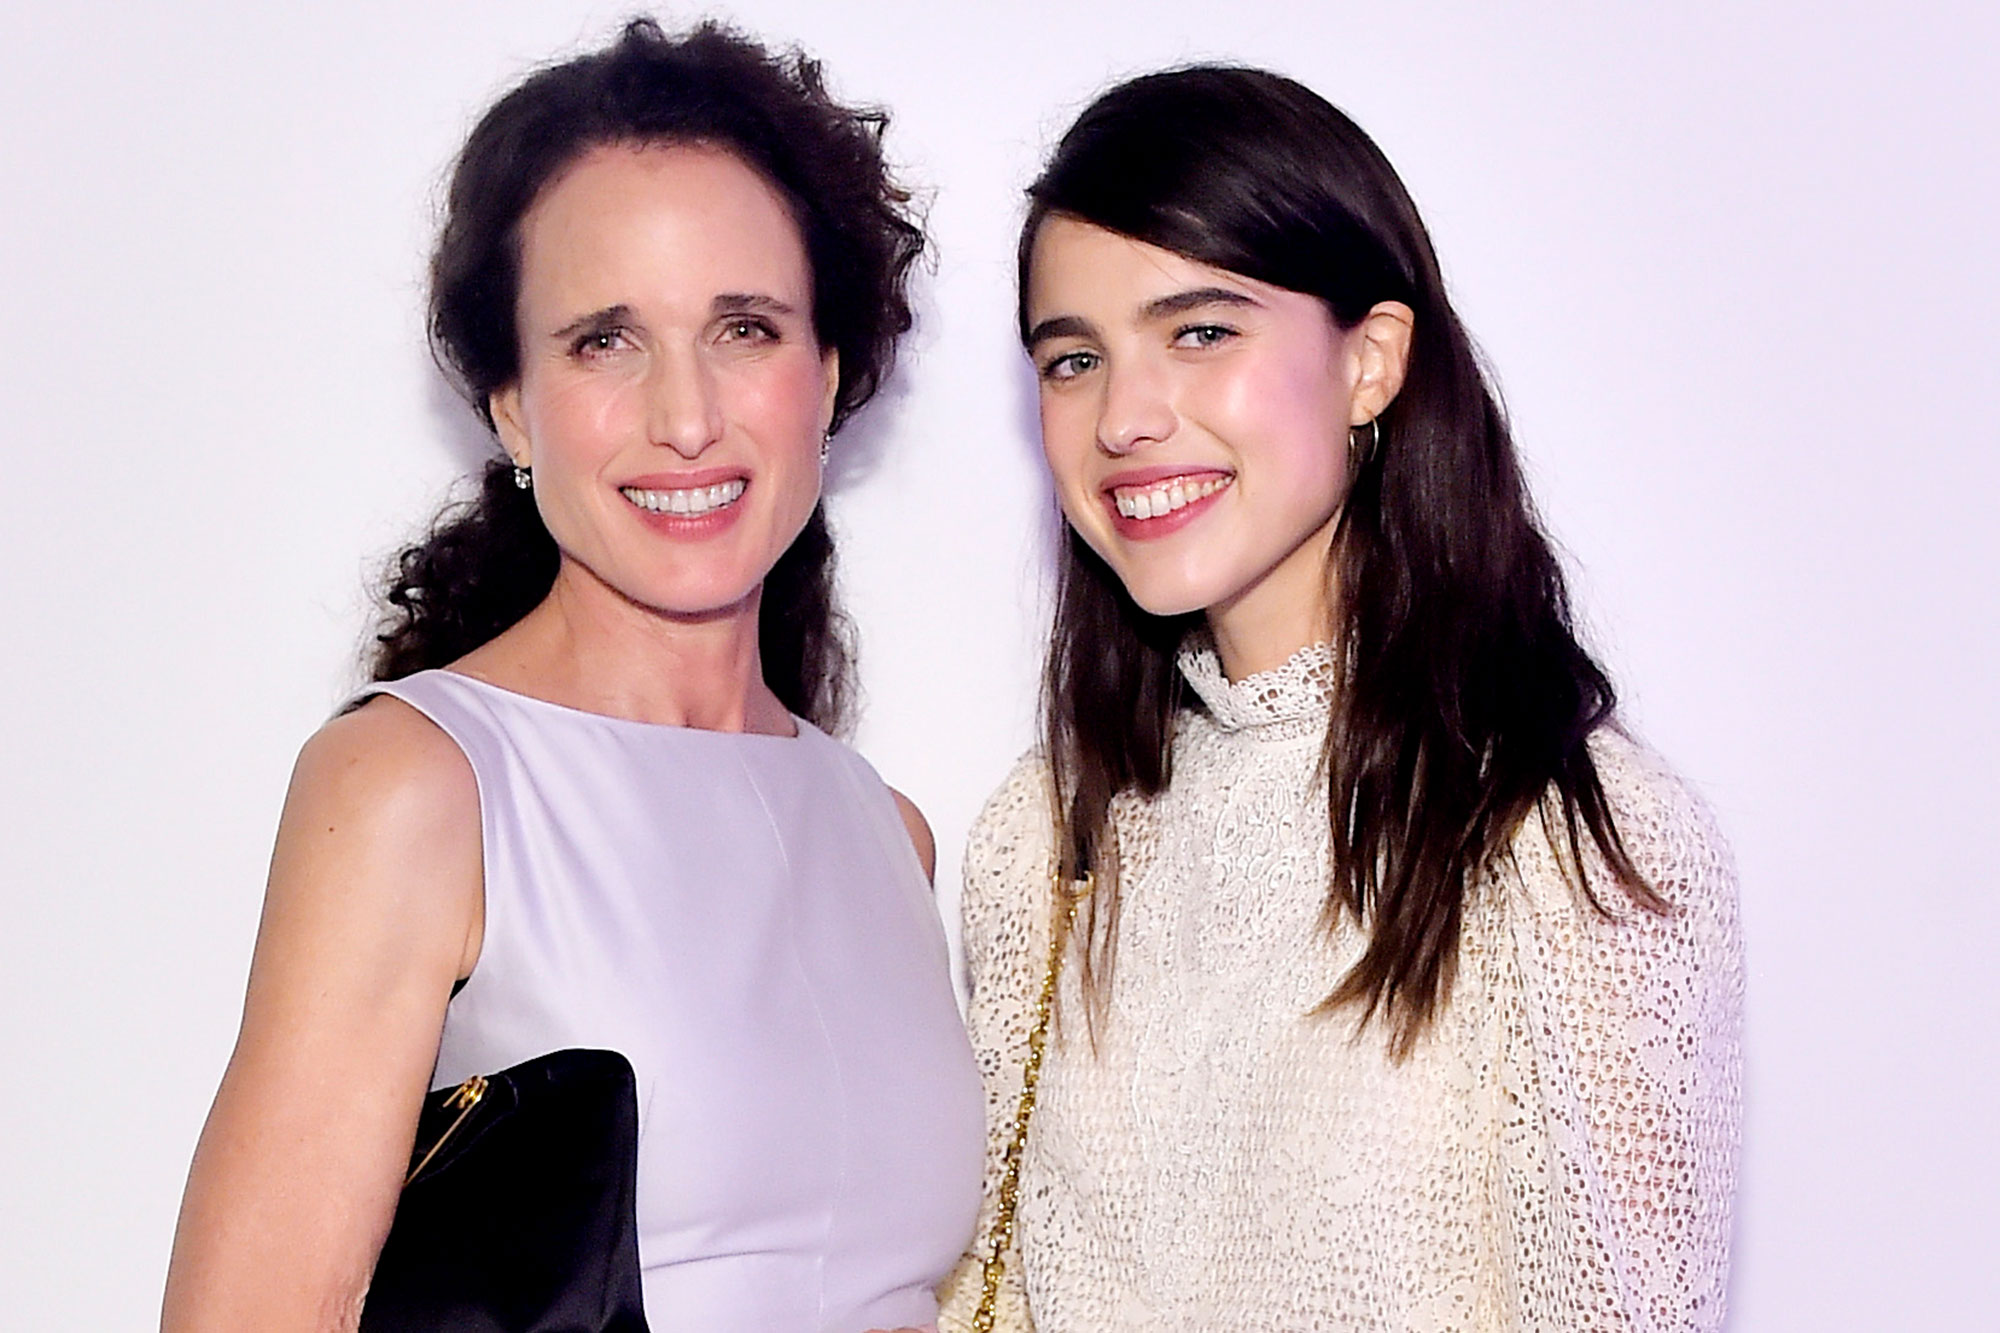 Andie MacDowell and Margaret Qualley